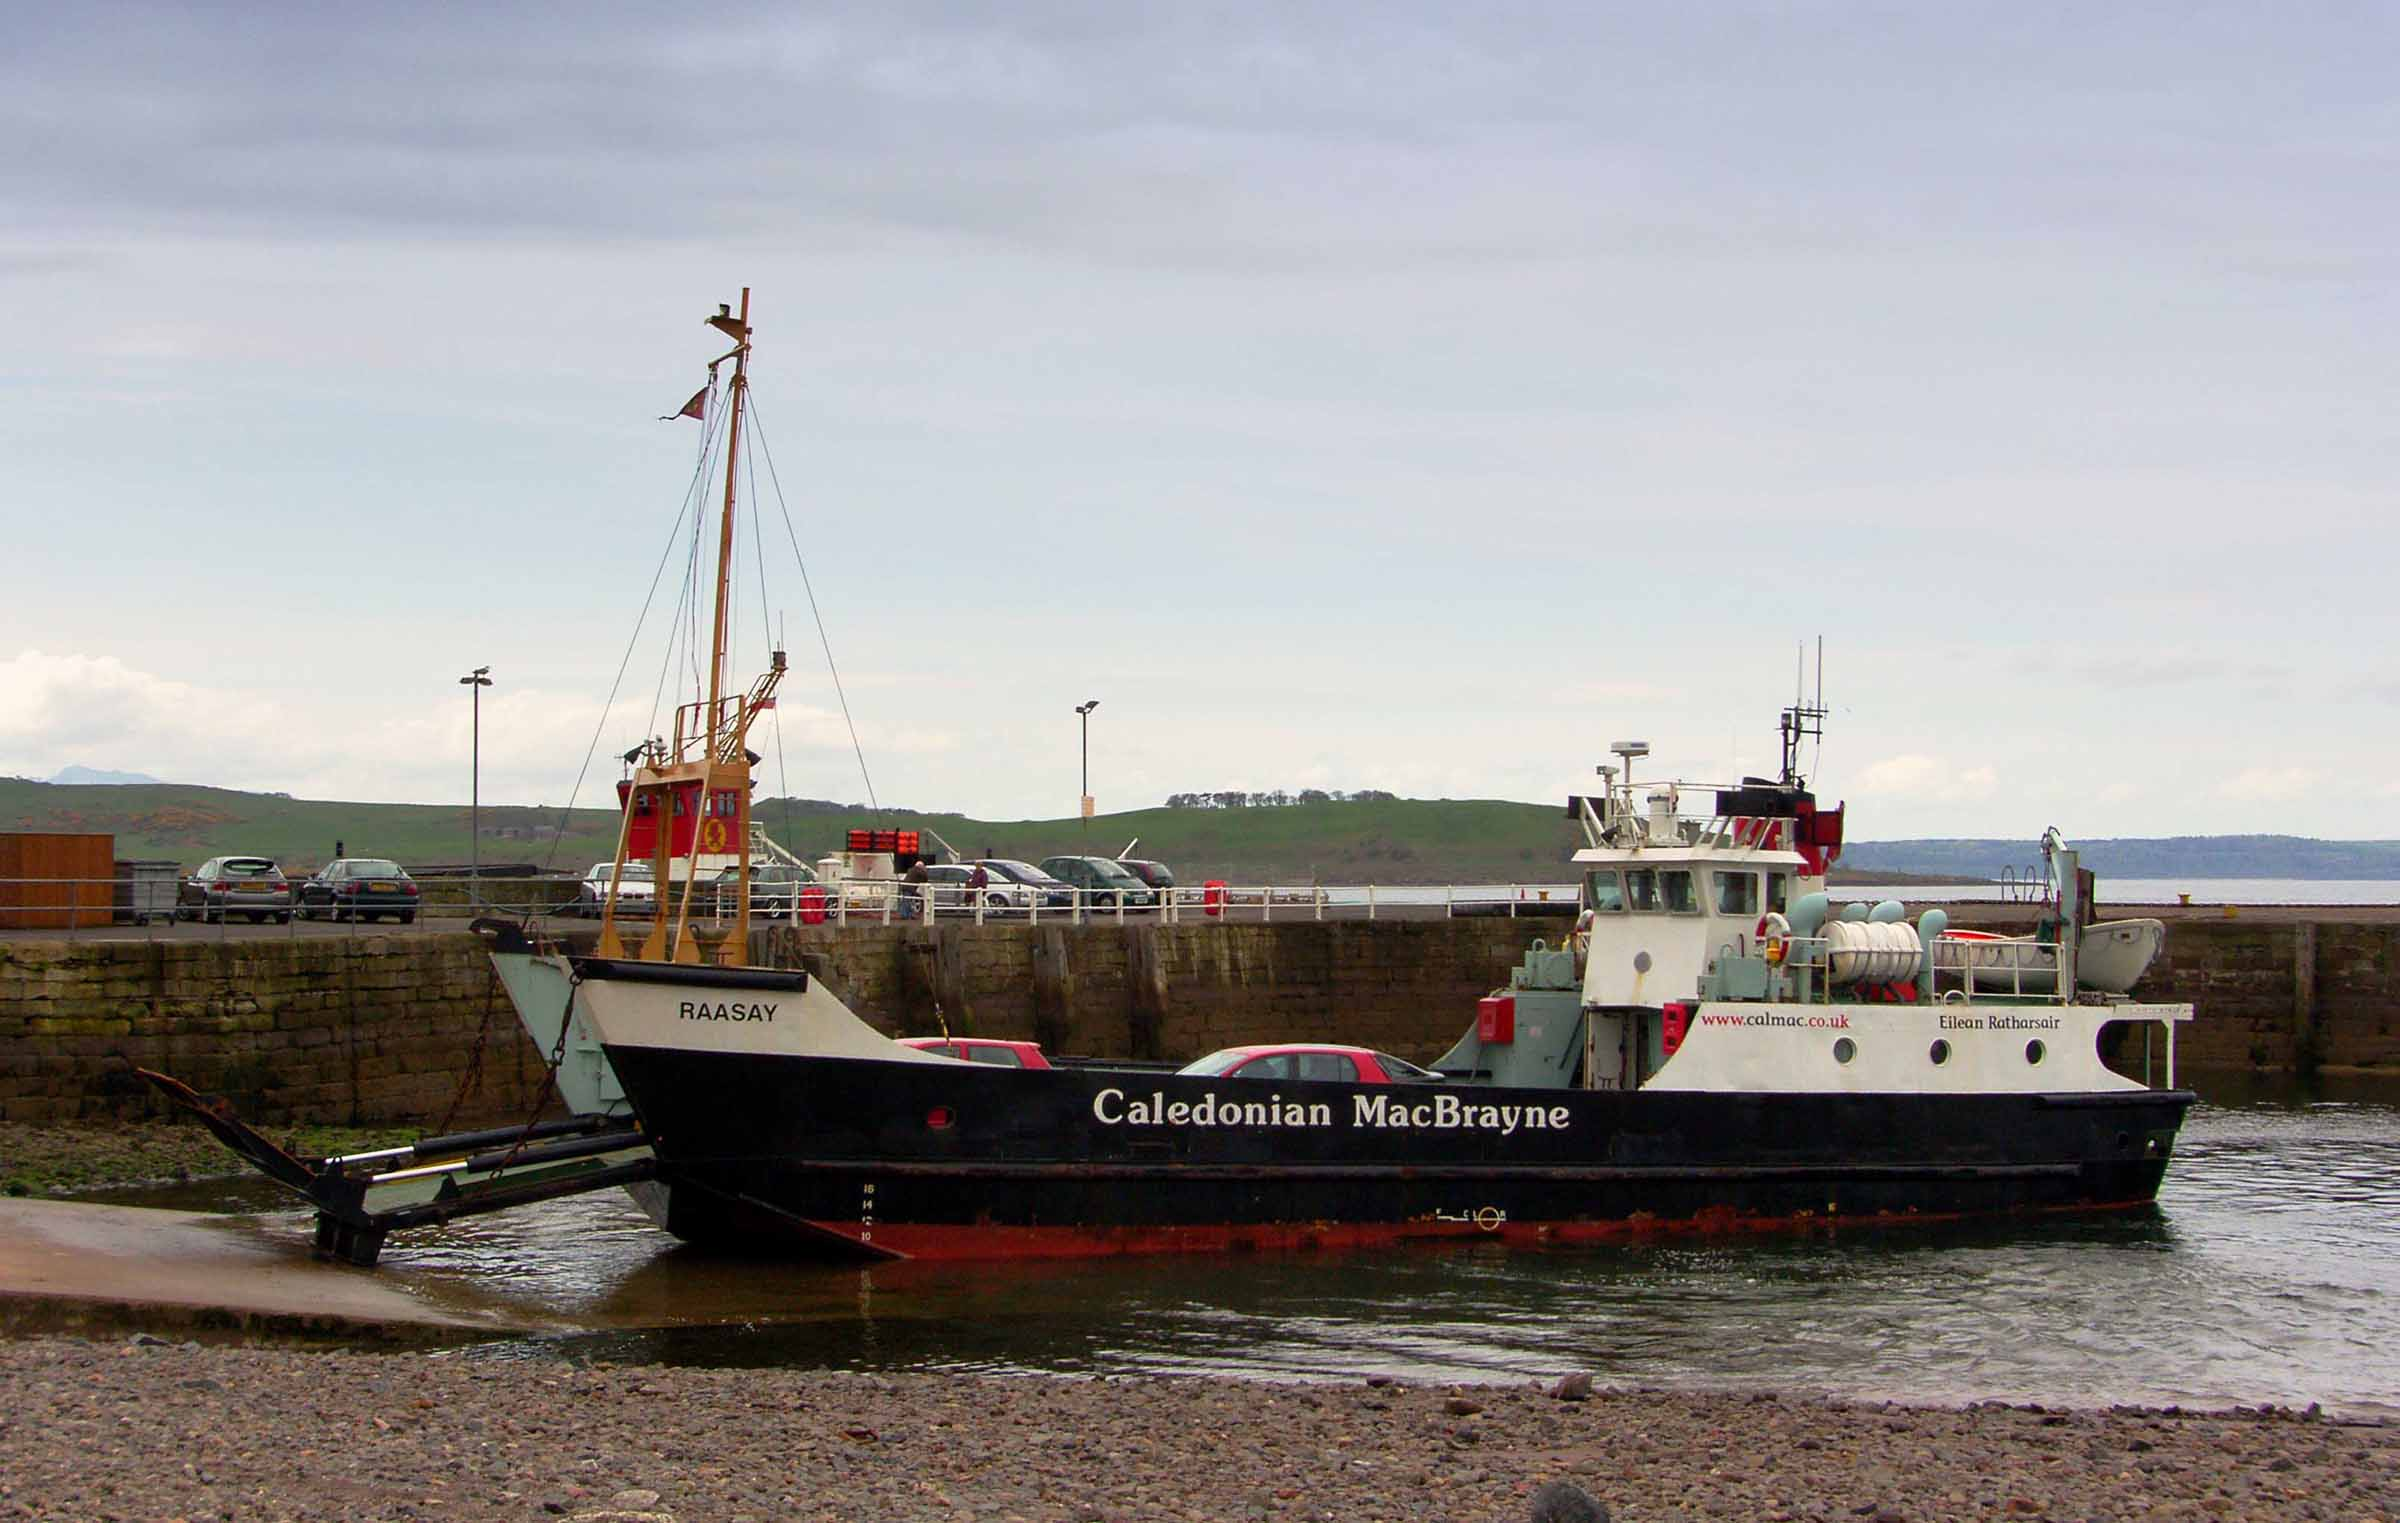 Raasay at Largs (Ships of CalMac)